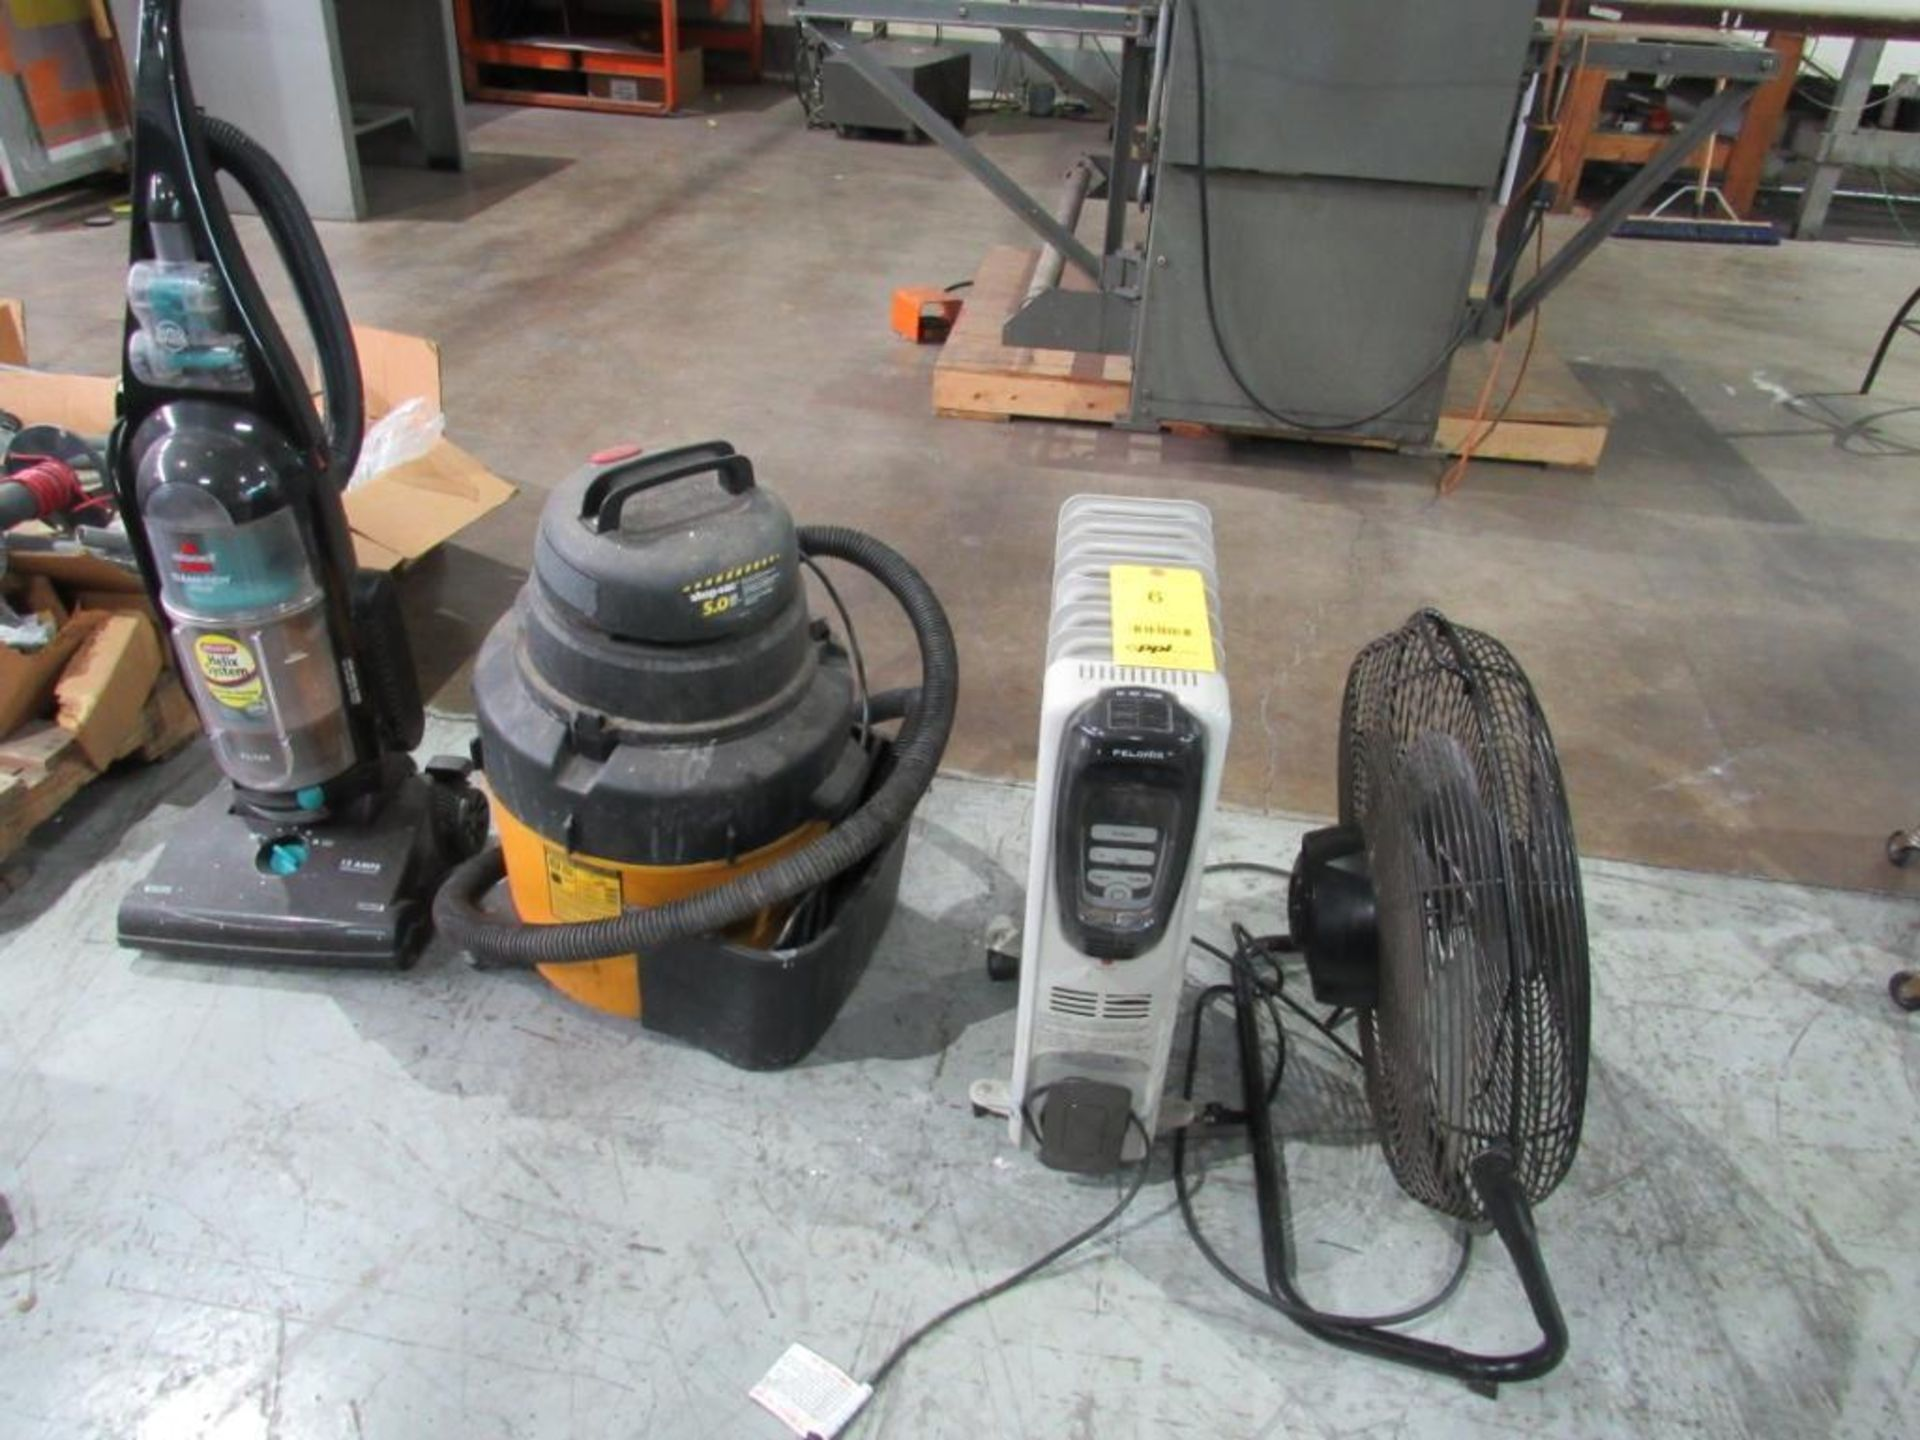 LOT: (1) Air King 20 in. Air Circulator, (1) 5.0 HP Shop Vac, (1) Pelonis Electric Heater, (1)